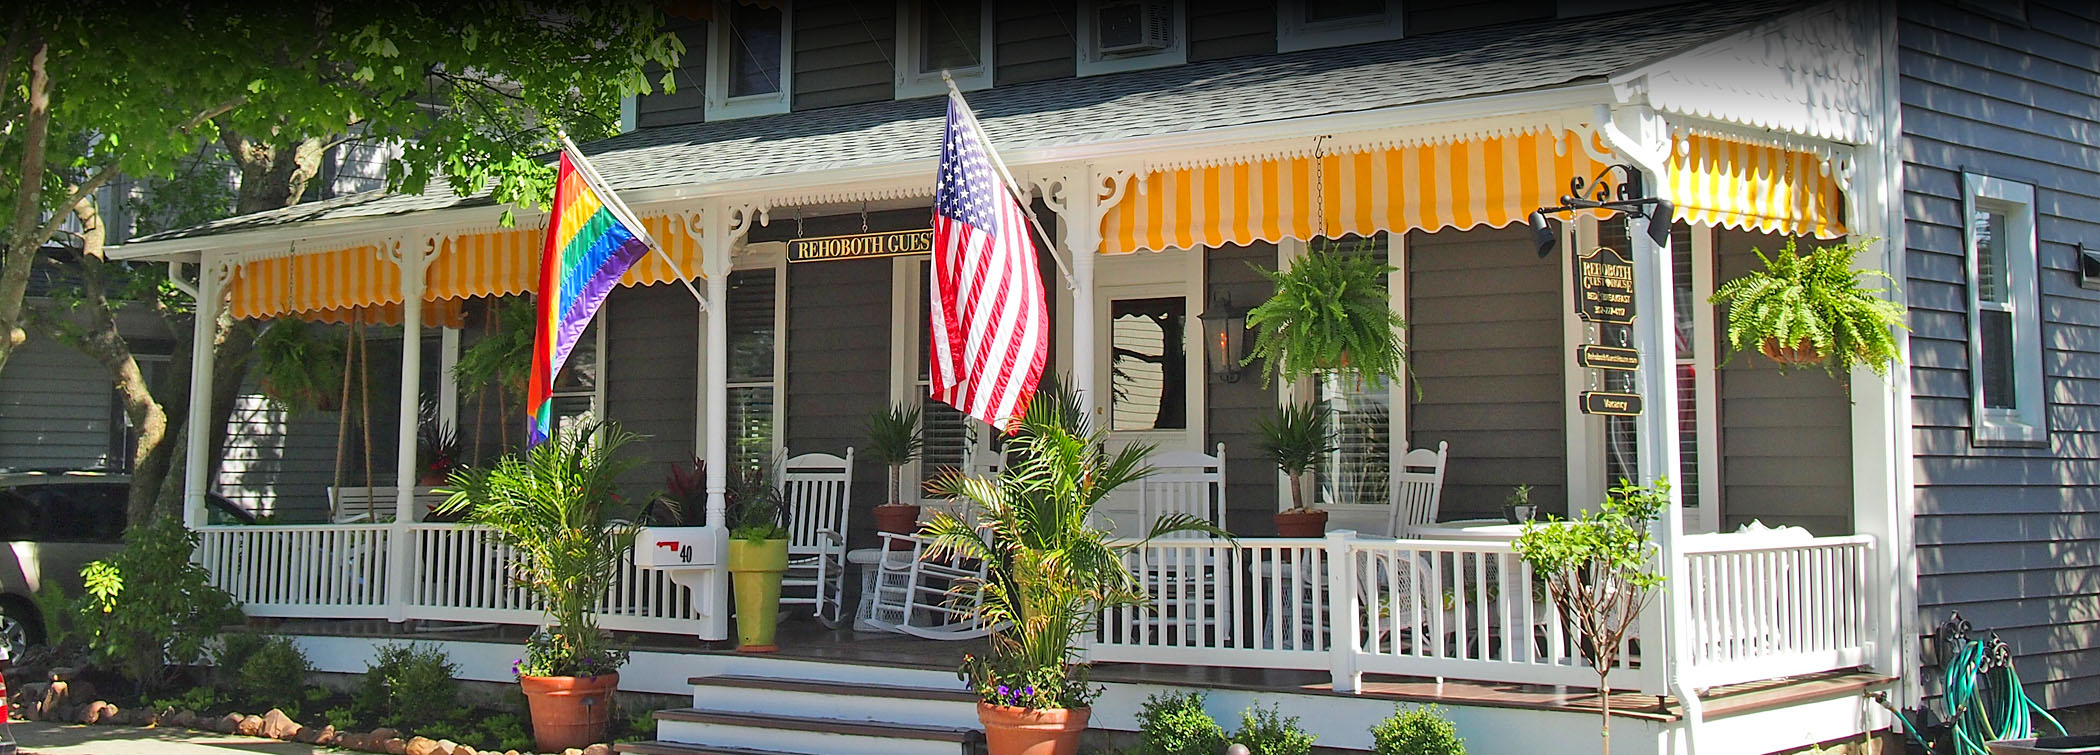 Rehoboth guest house a charming rehoboth beach guest house for Rehoboth house